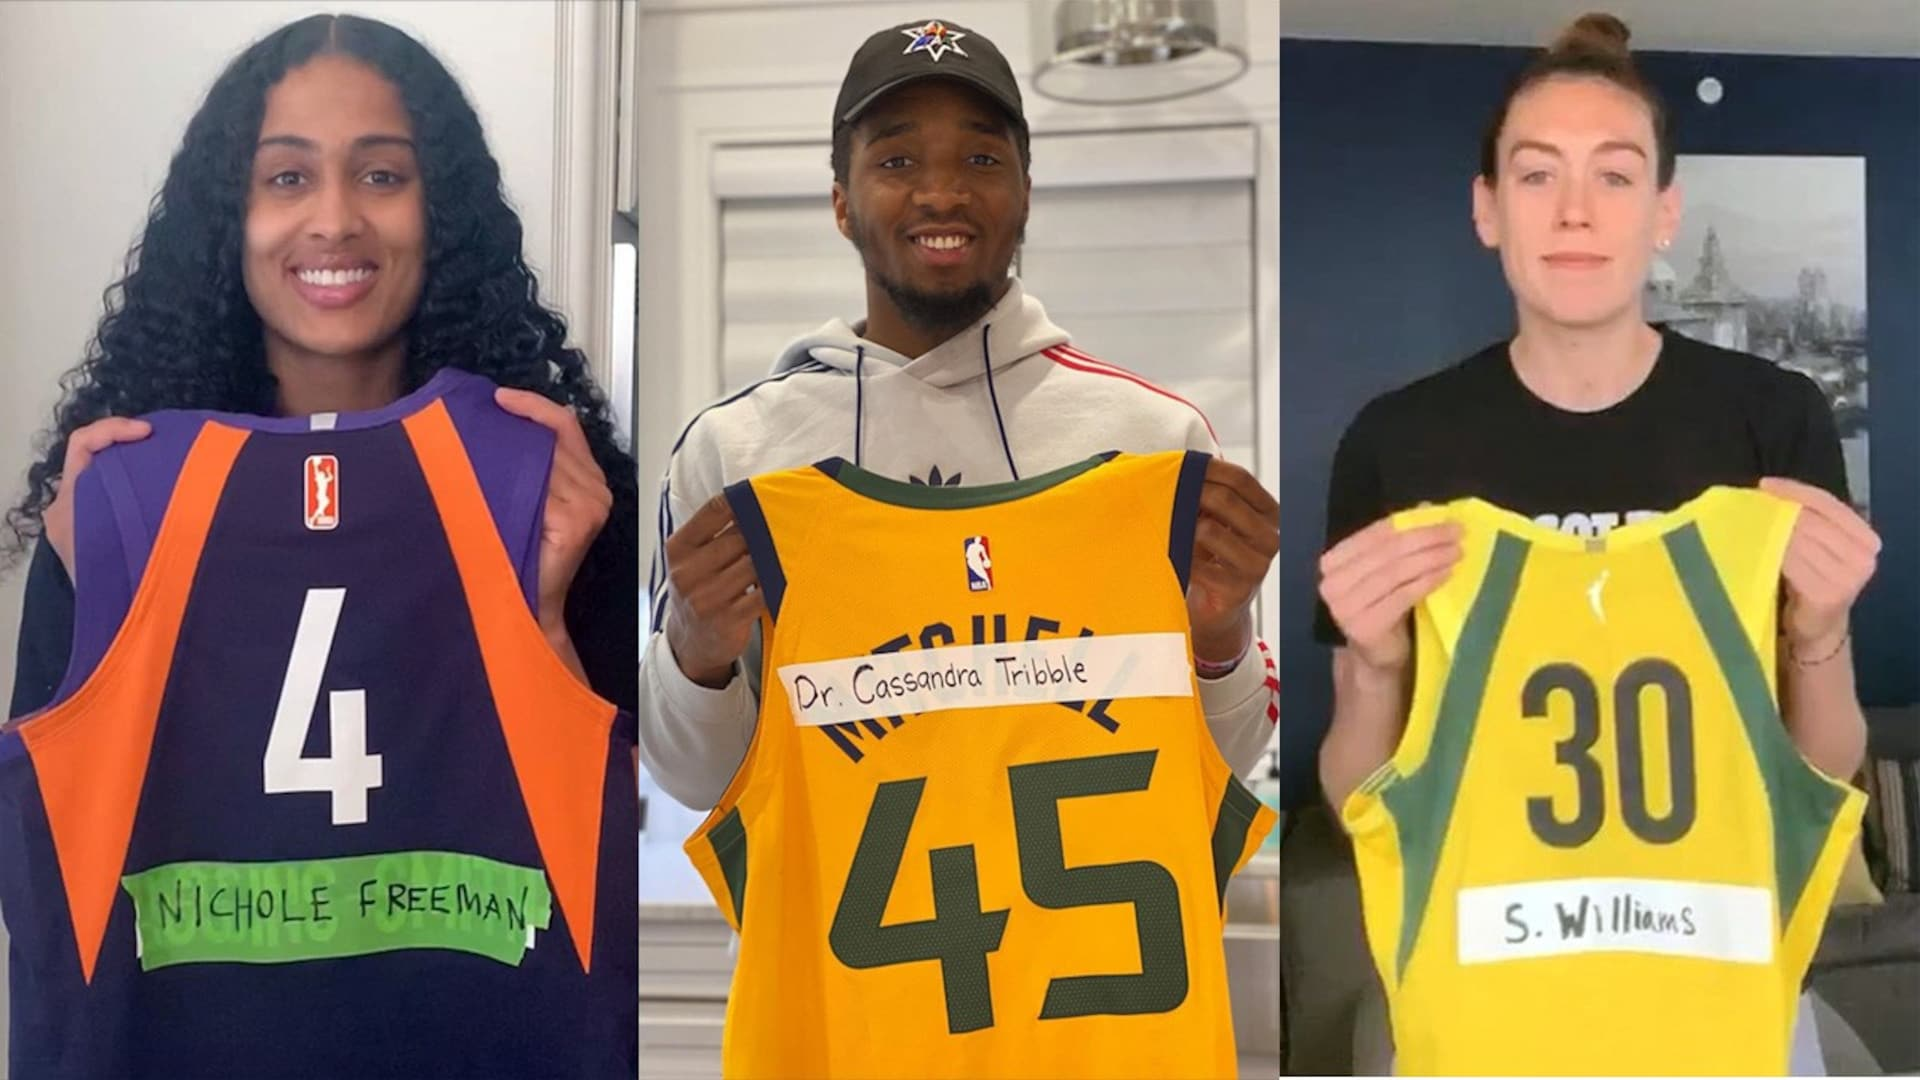 NBA, WNBA players join 'The Real Heroes Project' to honor healthcare workers